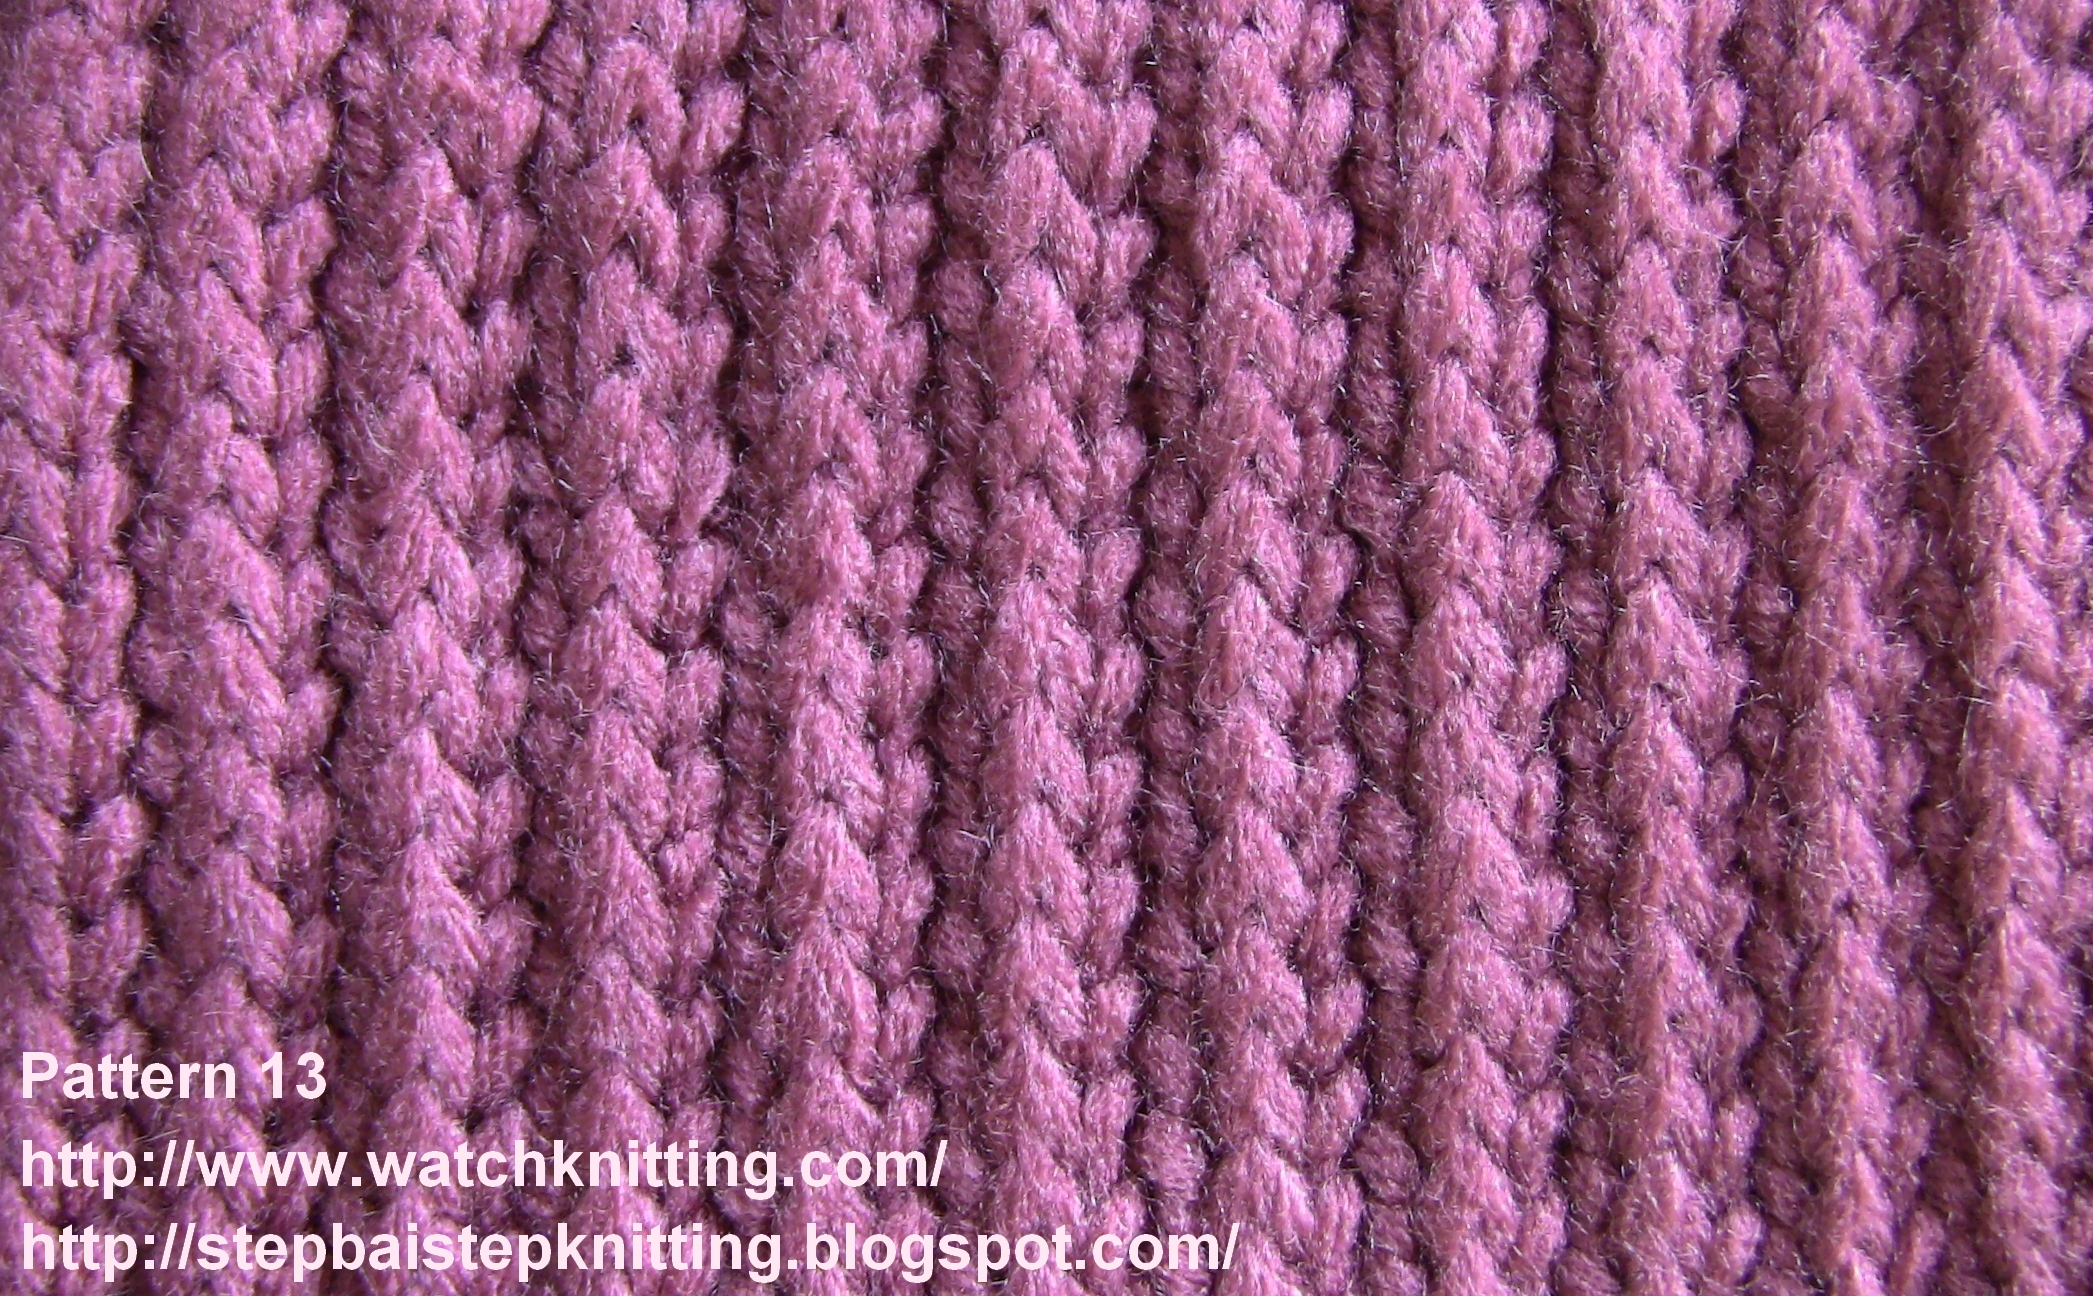 Design Knitting Patterns : Posts by Fariba Zahed Watch knitting - Page 2